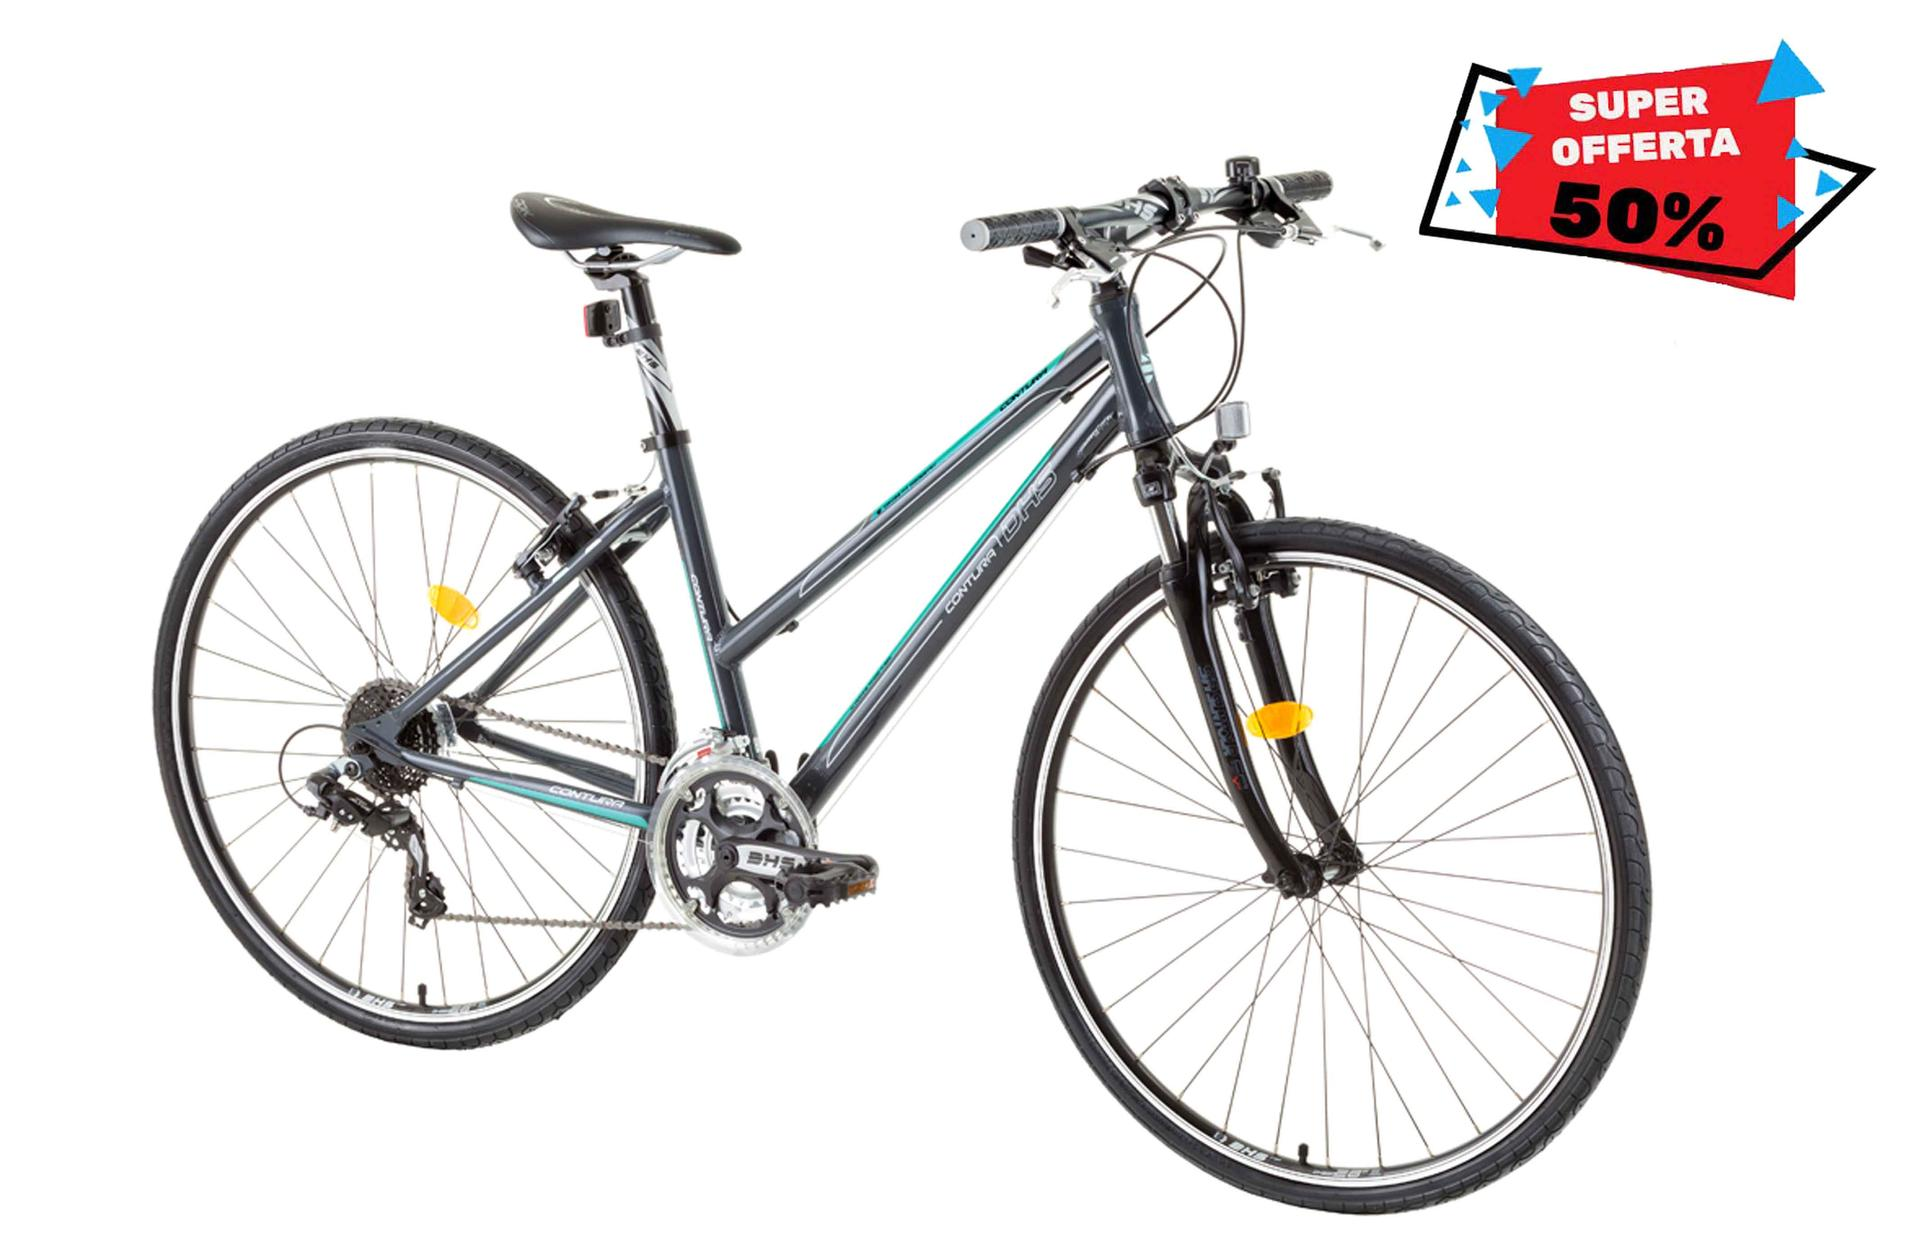 Bicicletta da cross da donna DHS 2866 Grey Green 440mm